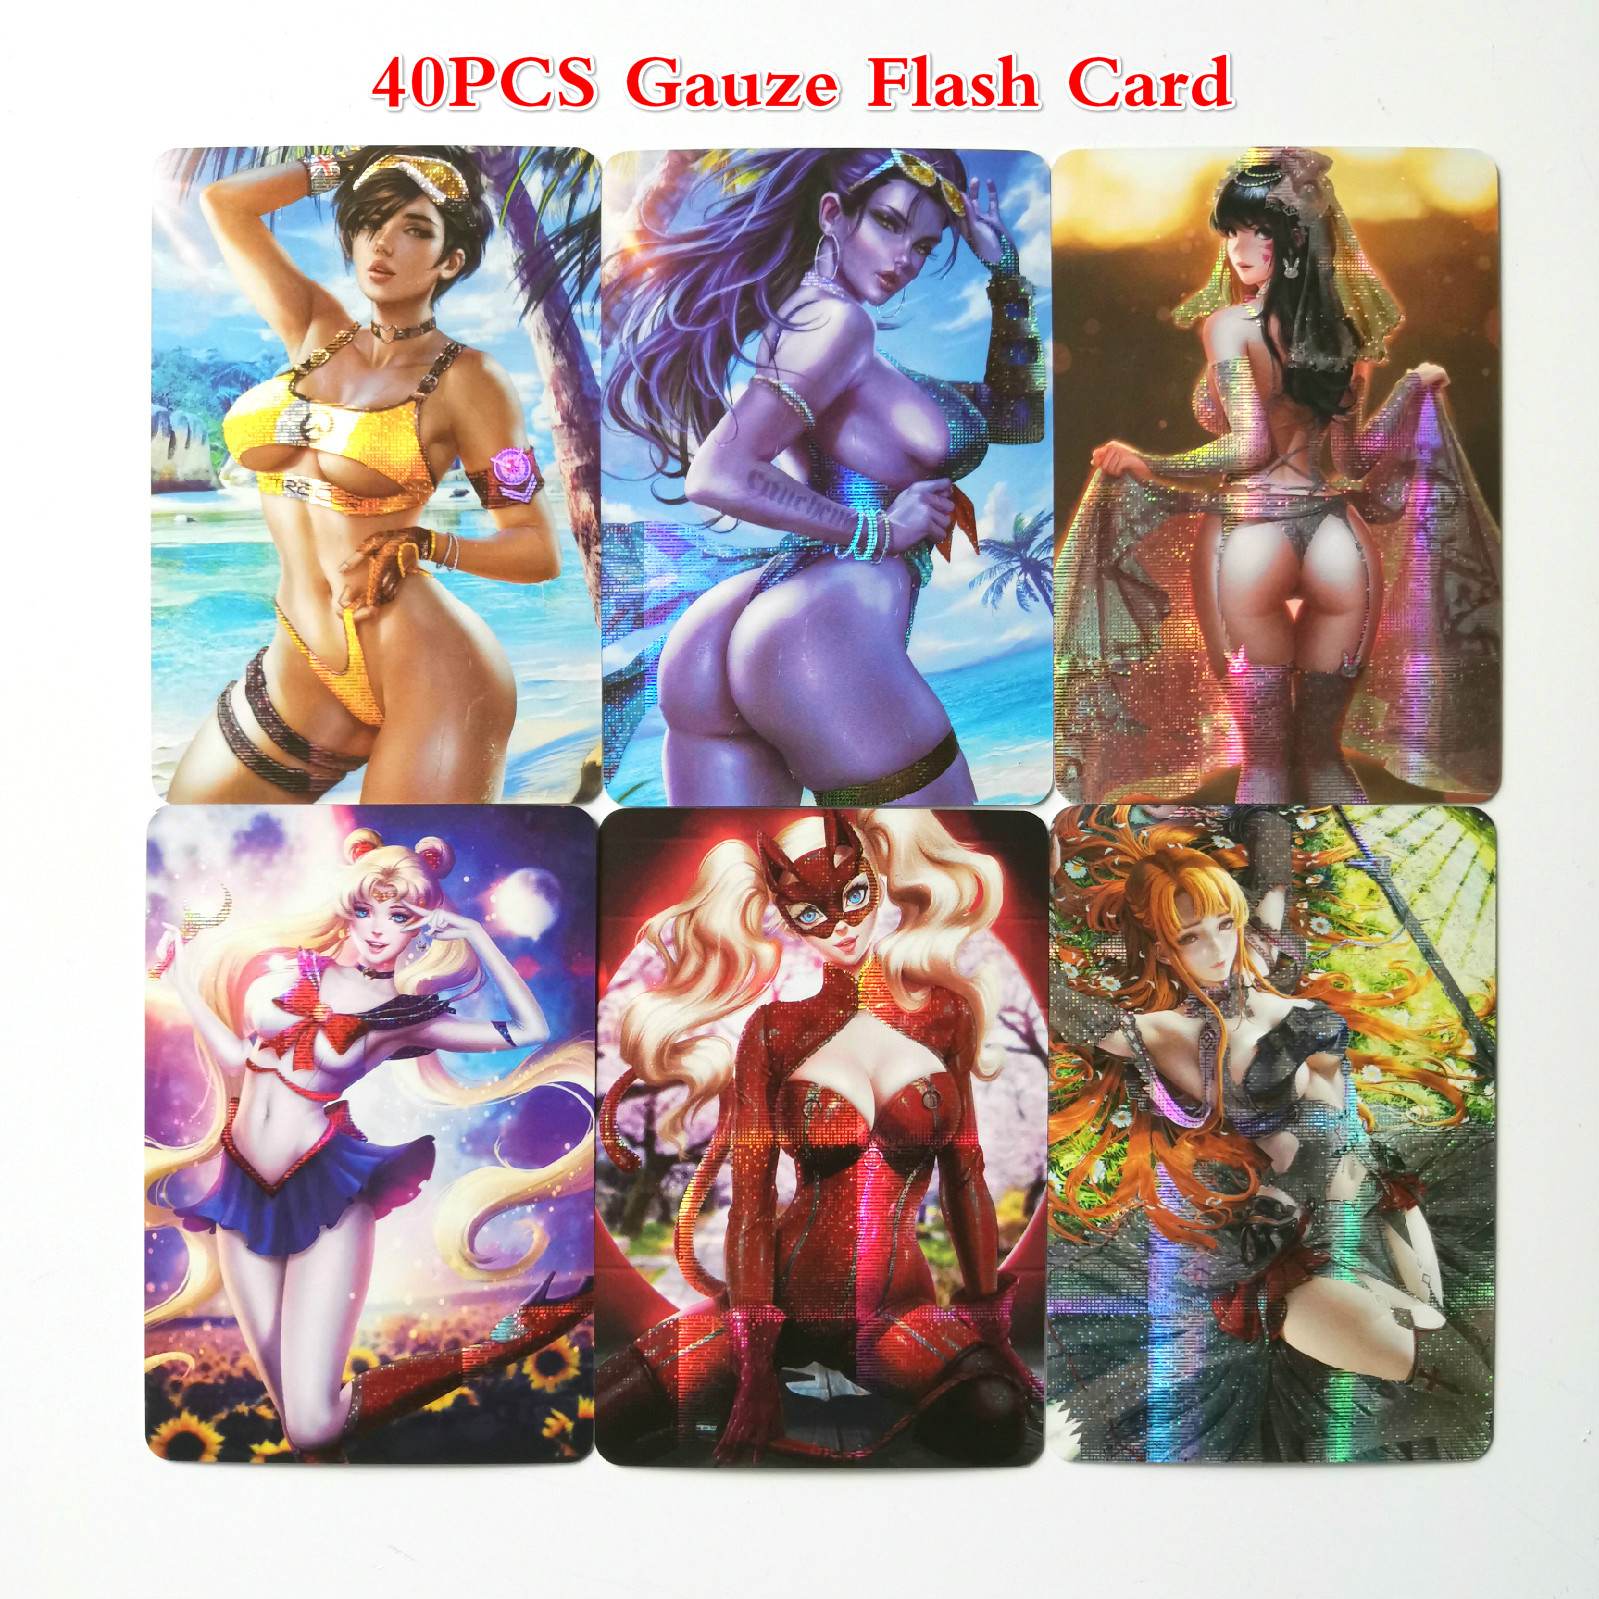 40pcs/set Sailor Moon Catwoman Captain Marvel Sexy Toys Hobbies Hobby Collectibles Game Collection Anime Cards